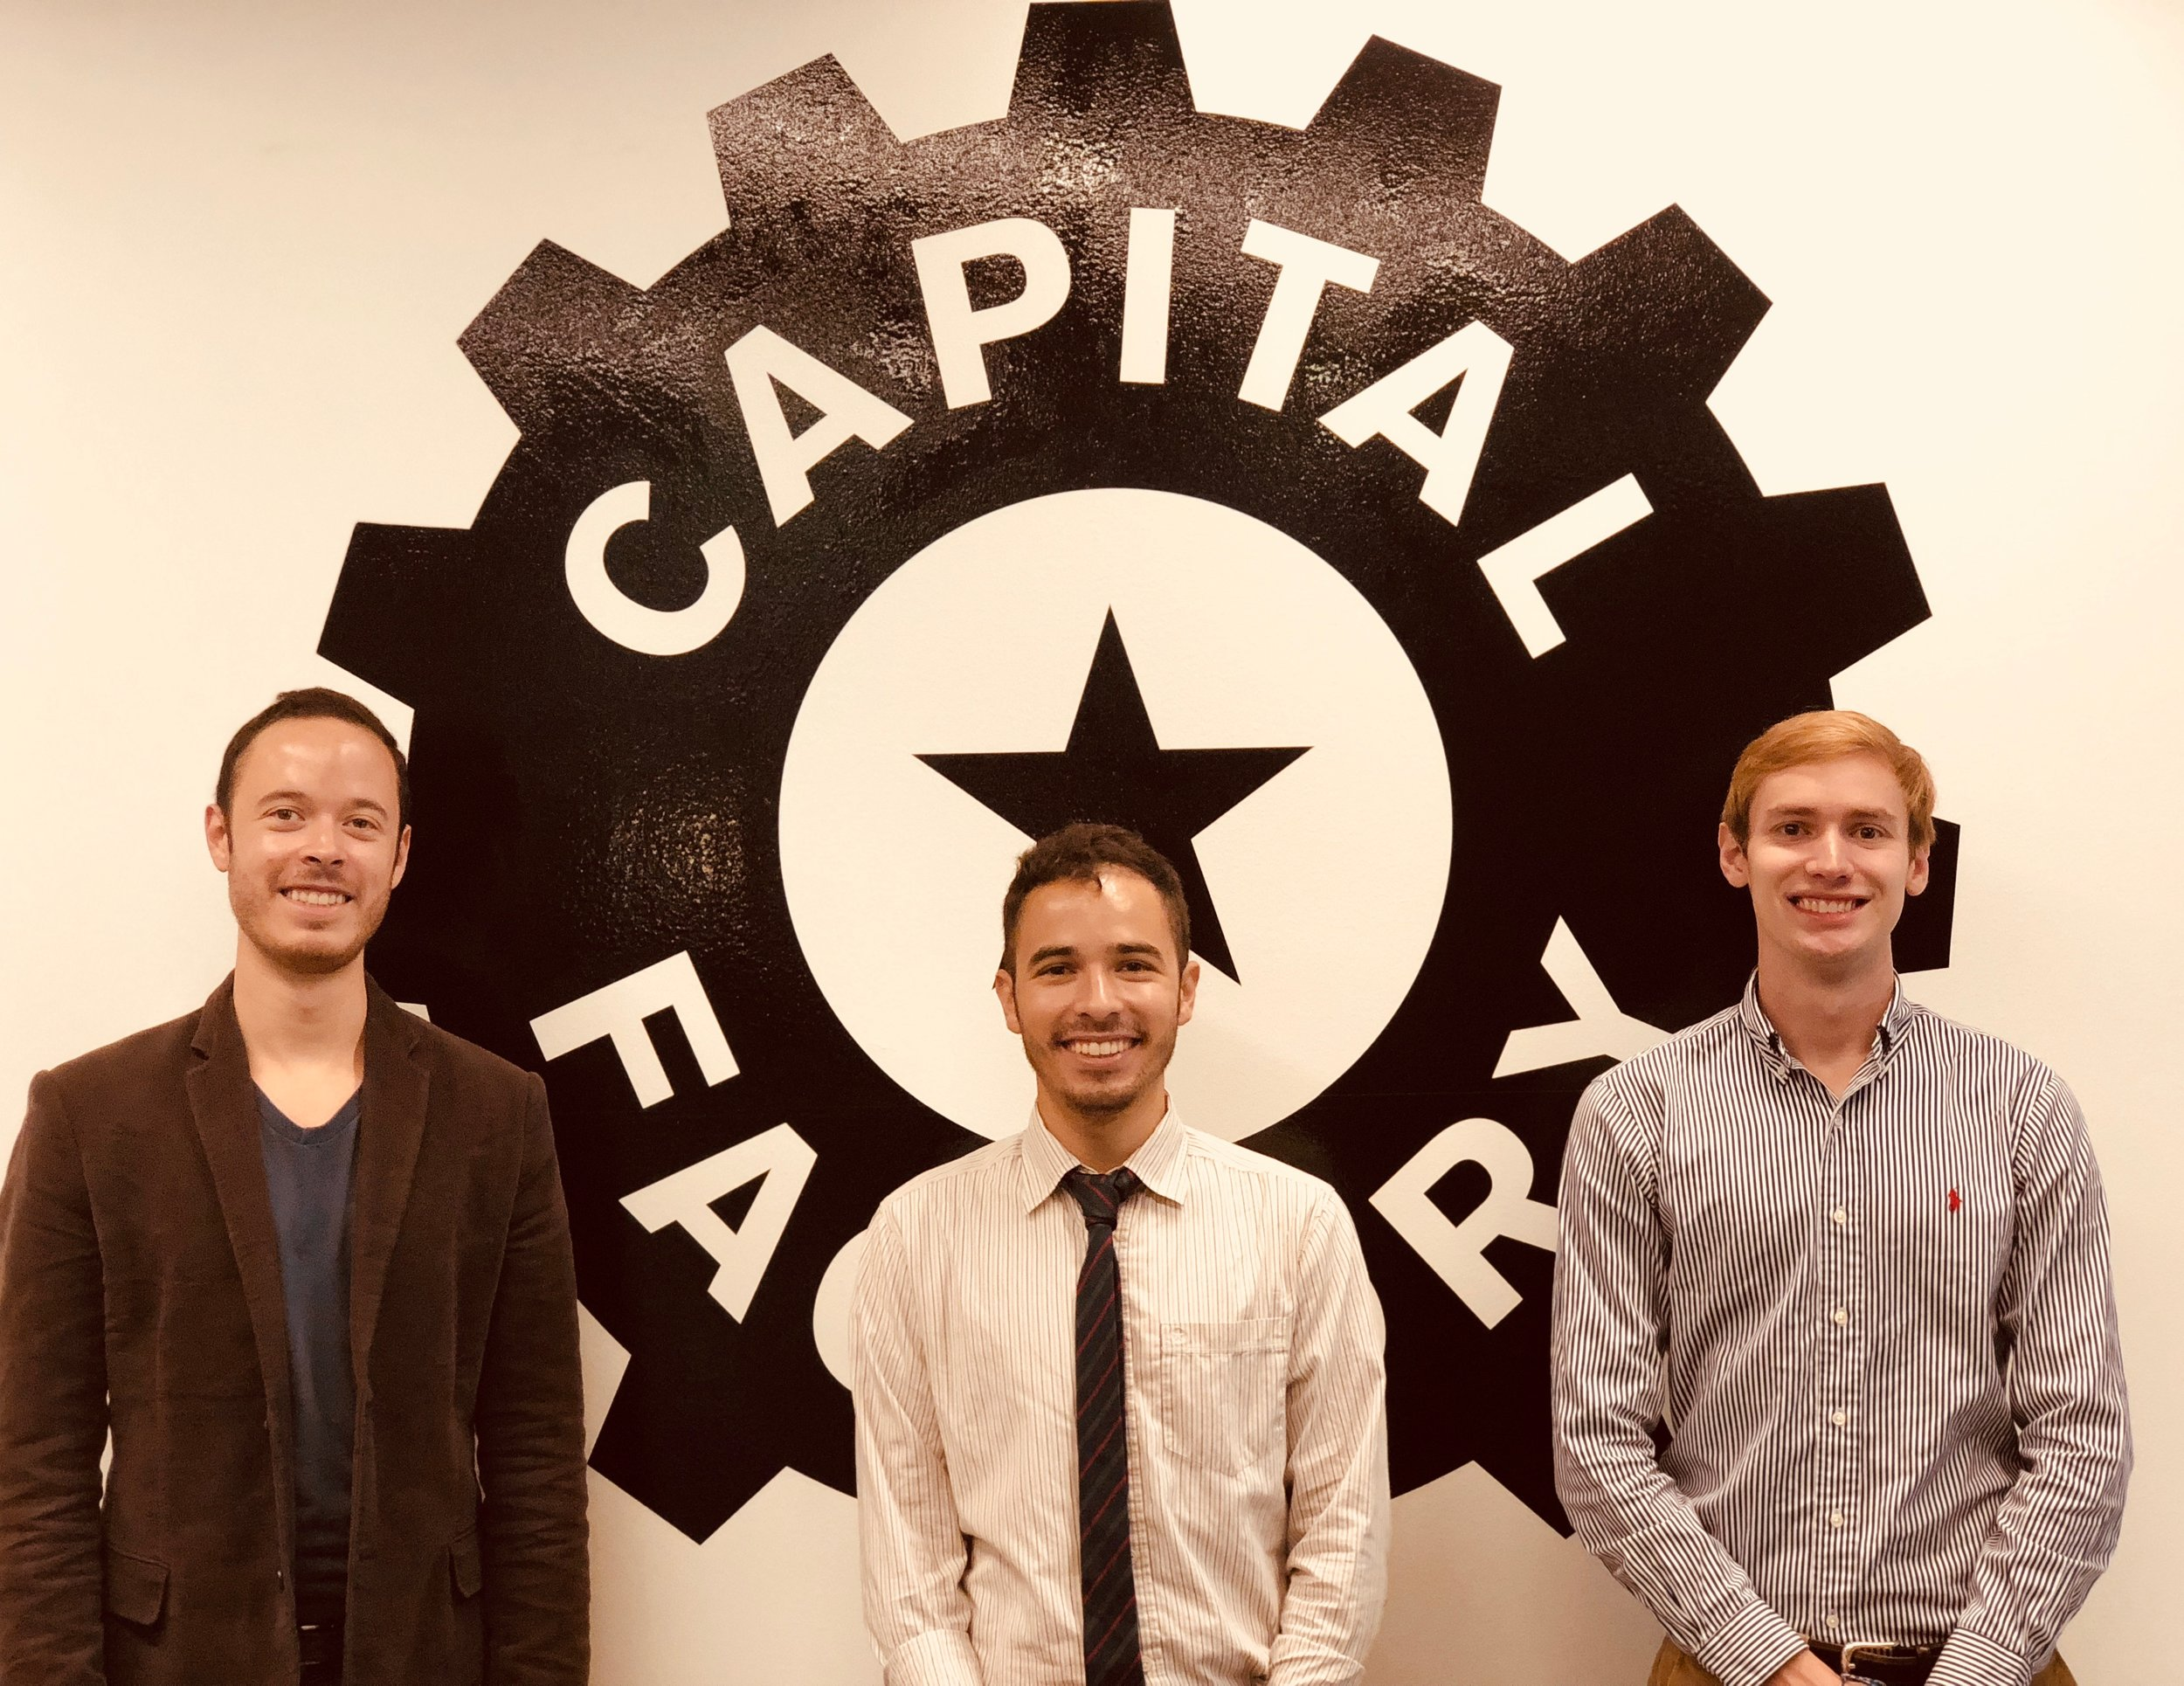 Chris Villanueva, Matt Villanueva, and Mel Stack at the Capital Factory in Austin, TX.